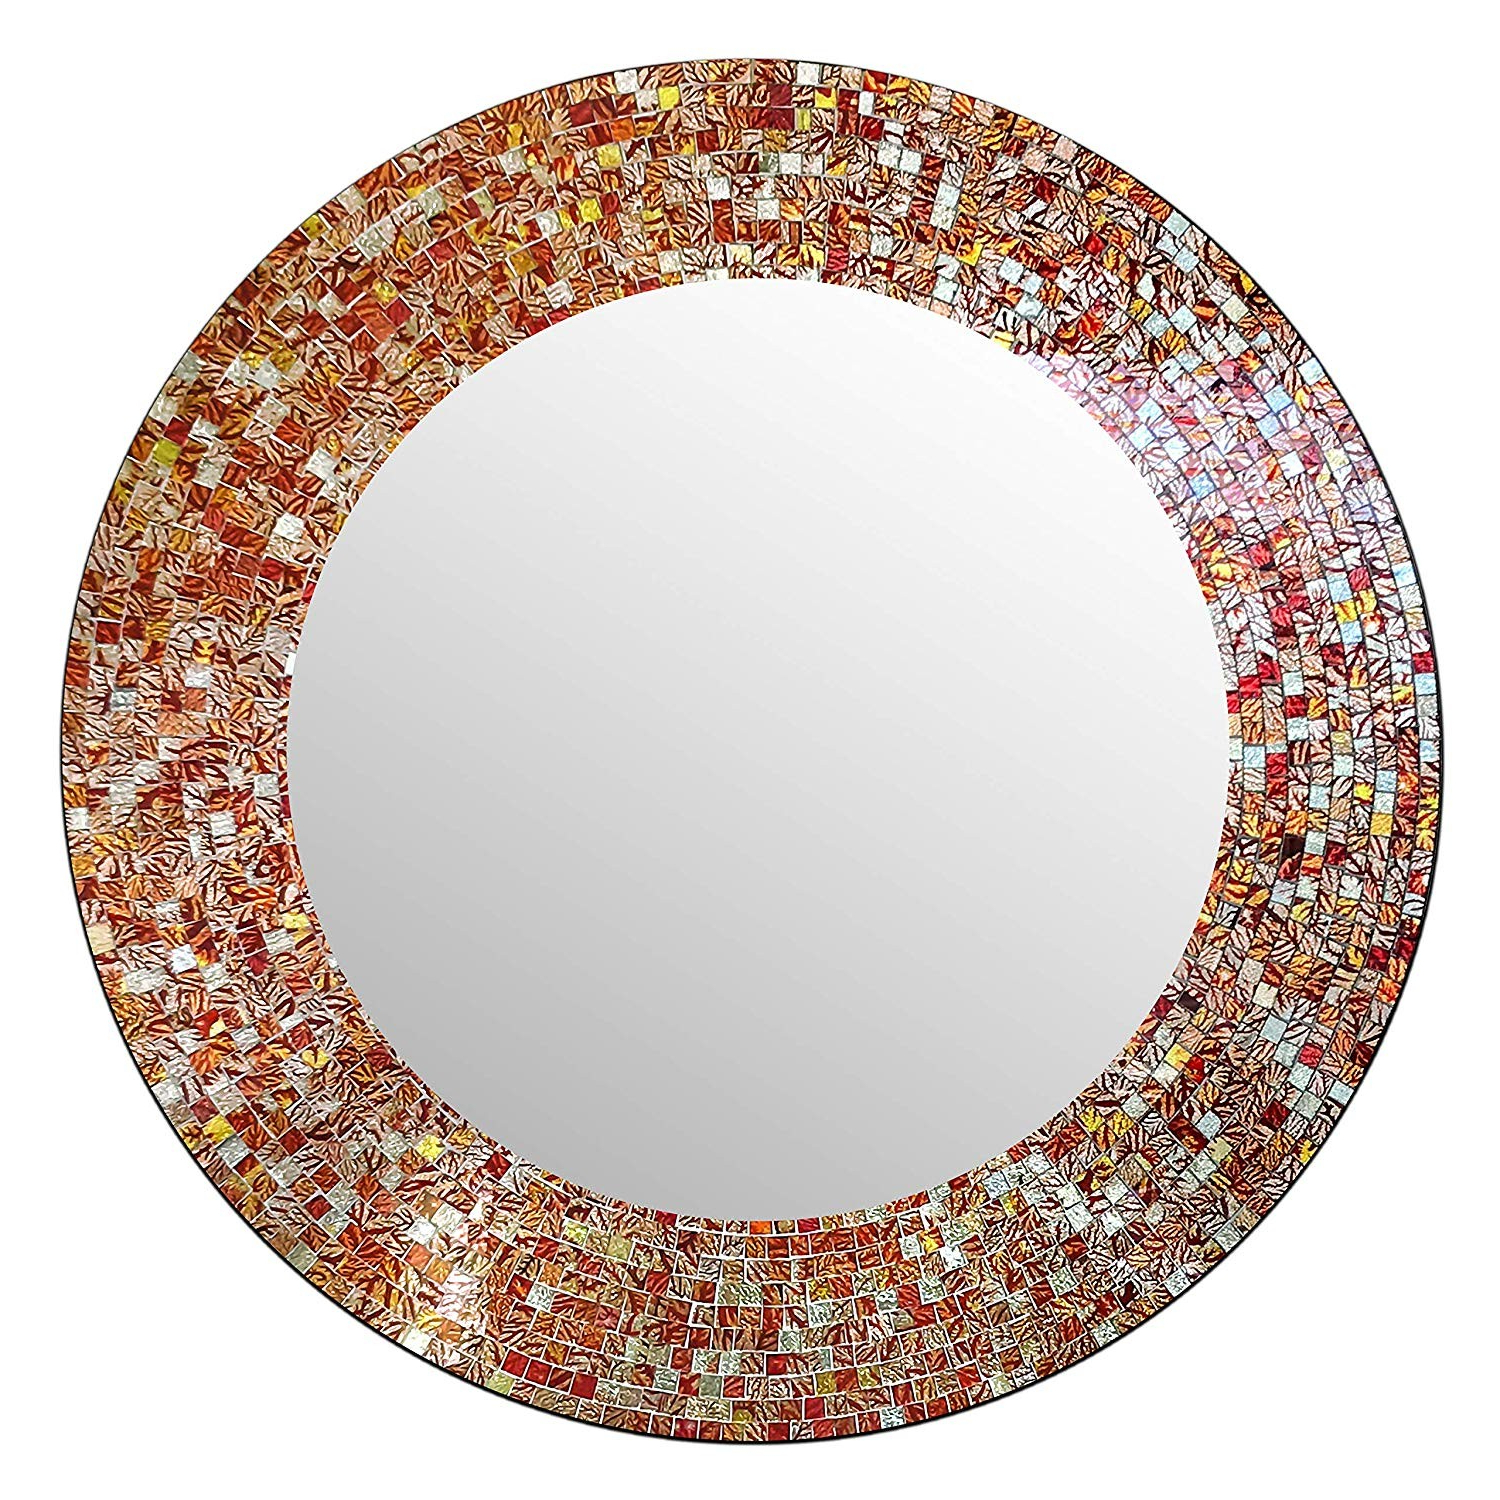 "Fashionable Orange Wall Mirrors Intended For Shop Decorshore 24"" Traditional Round Mosaic Mirror, Decorative Wall (View 18 of 20)"